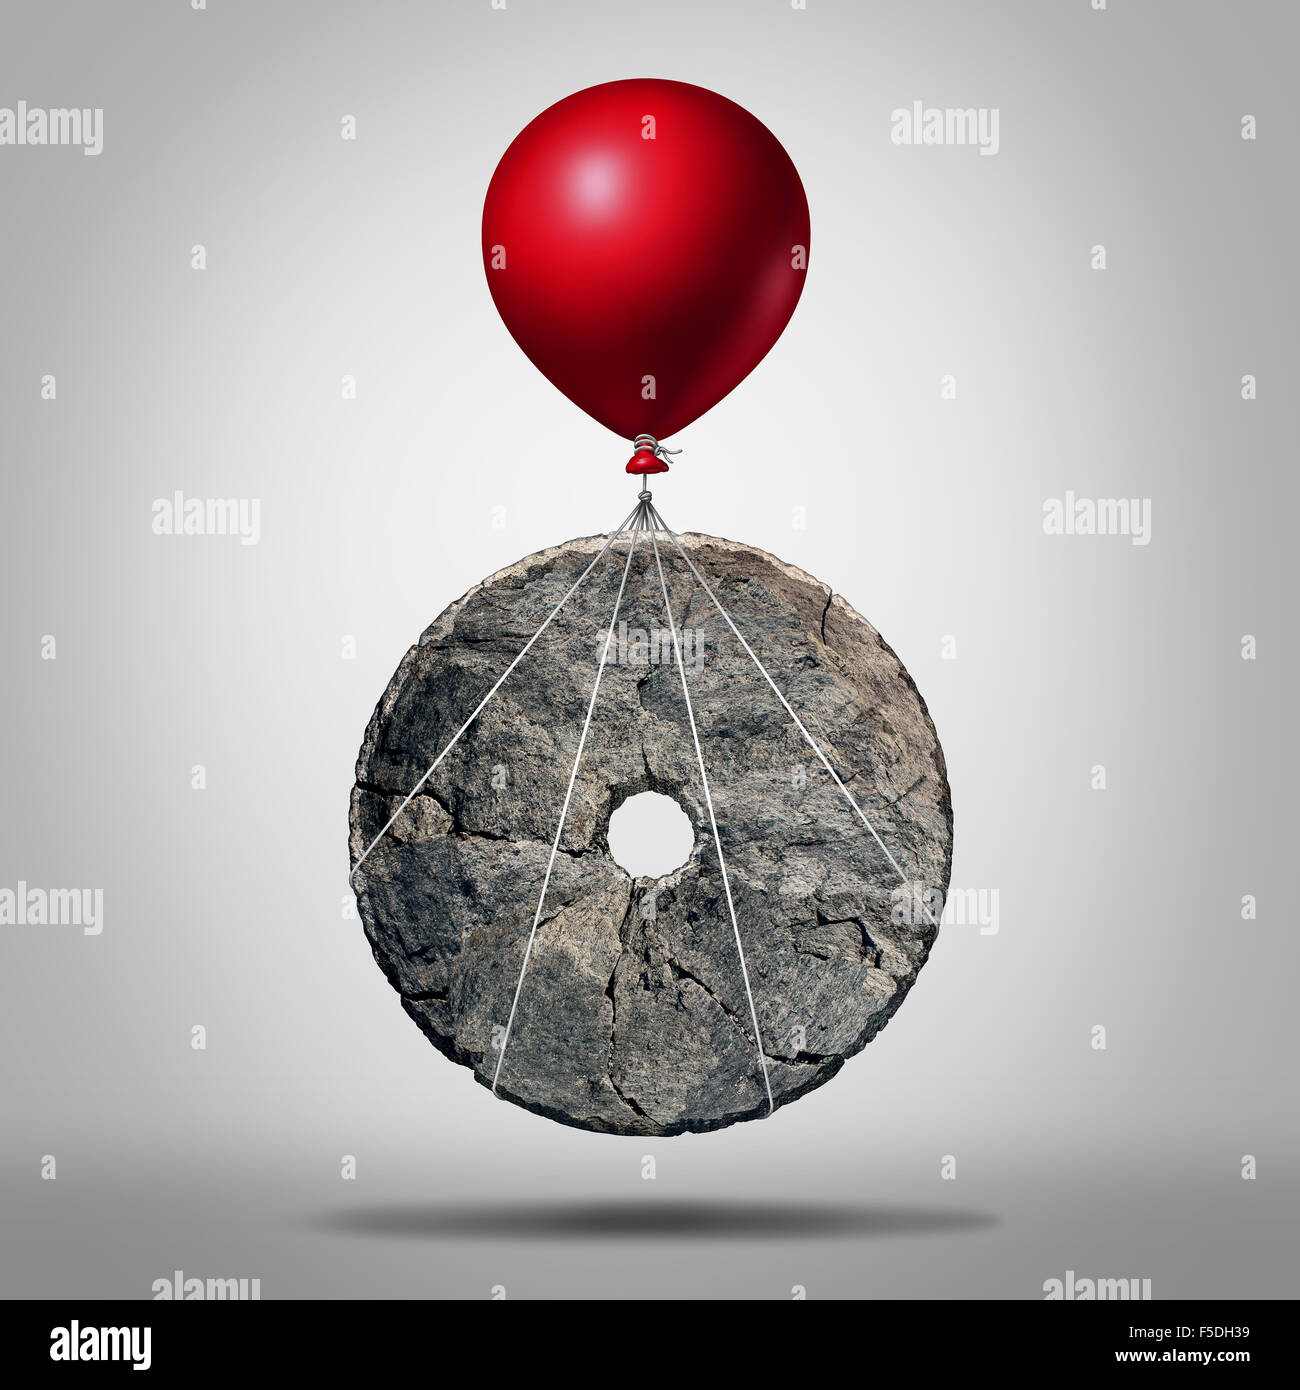 Technology progress and invention revolution,symbol as an early stone wheel being lifted by a balloon as a modernization - Stock Image